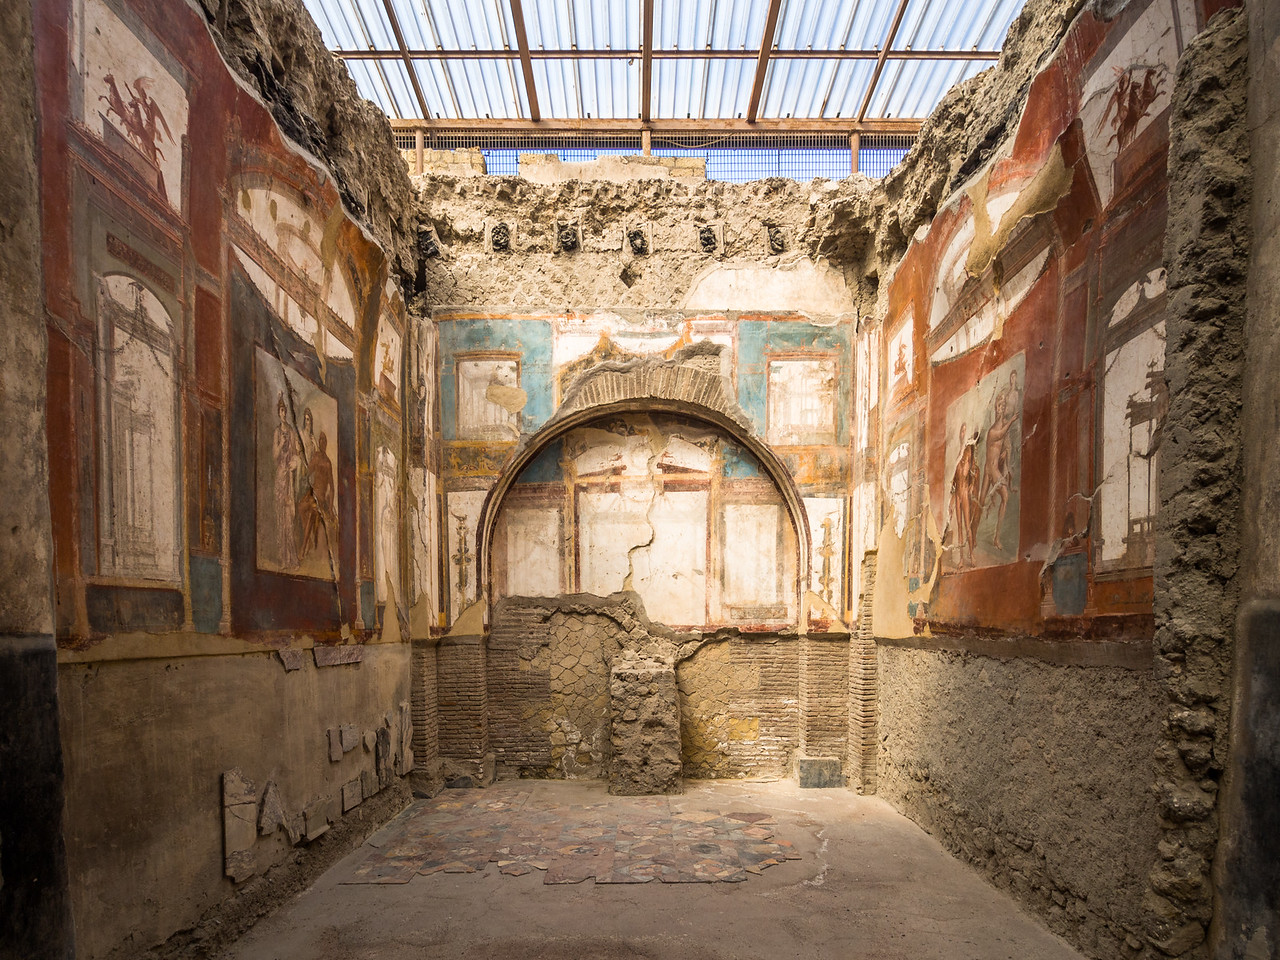 Frescoes inside the Temple of Augustali, Herculaneum